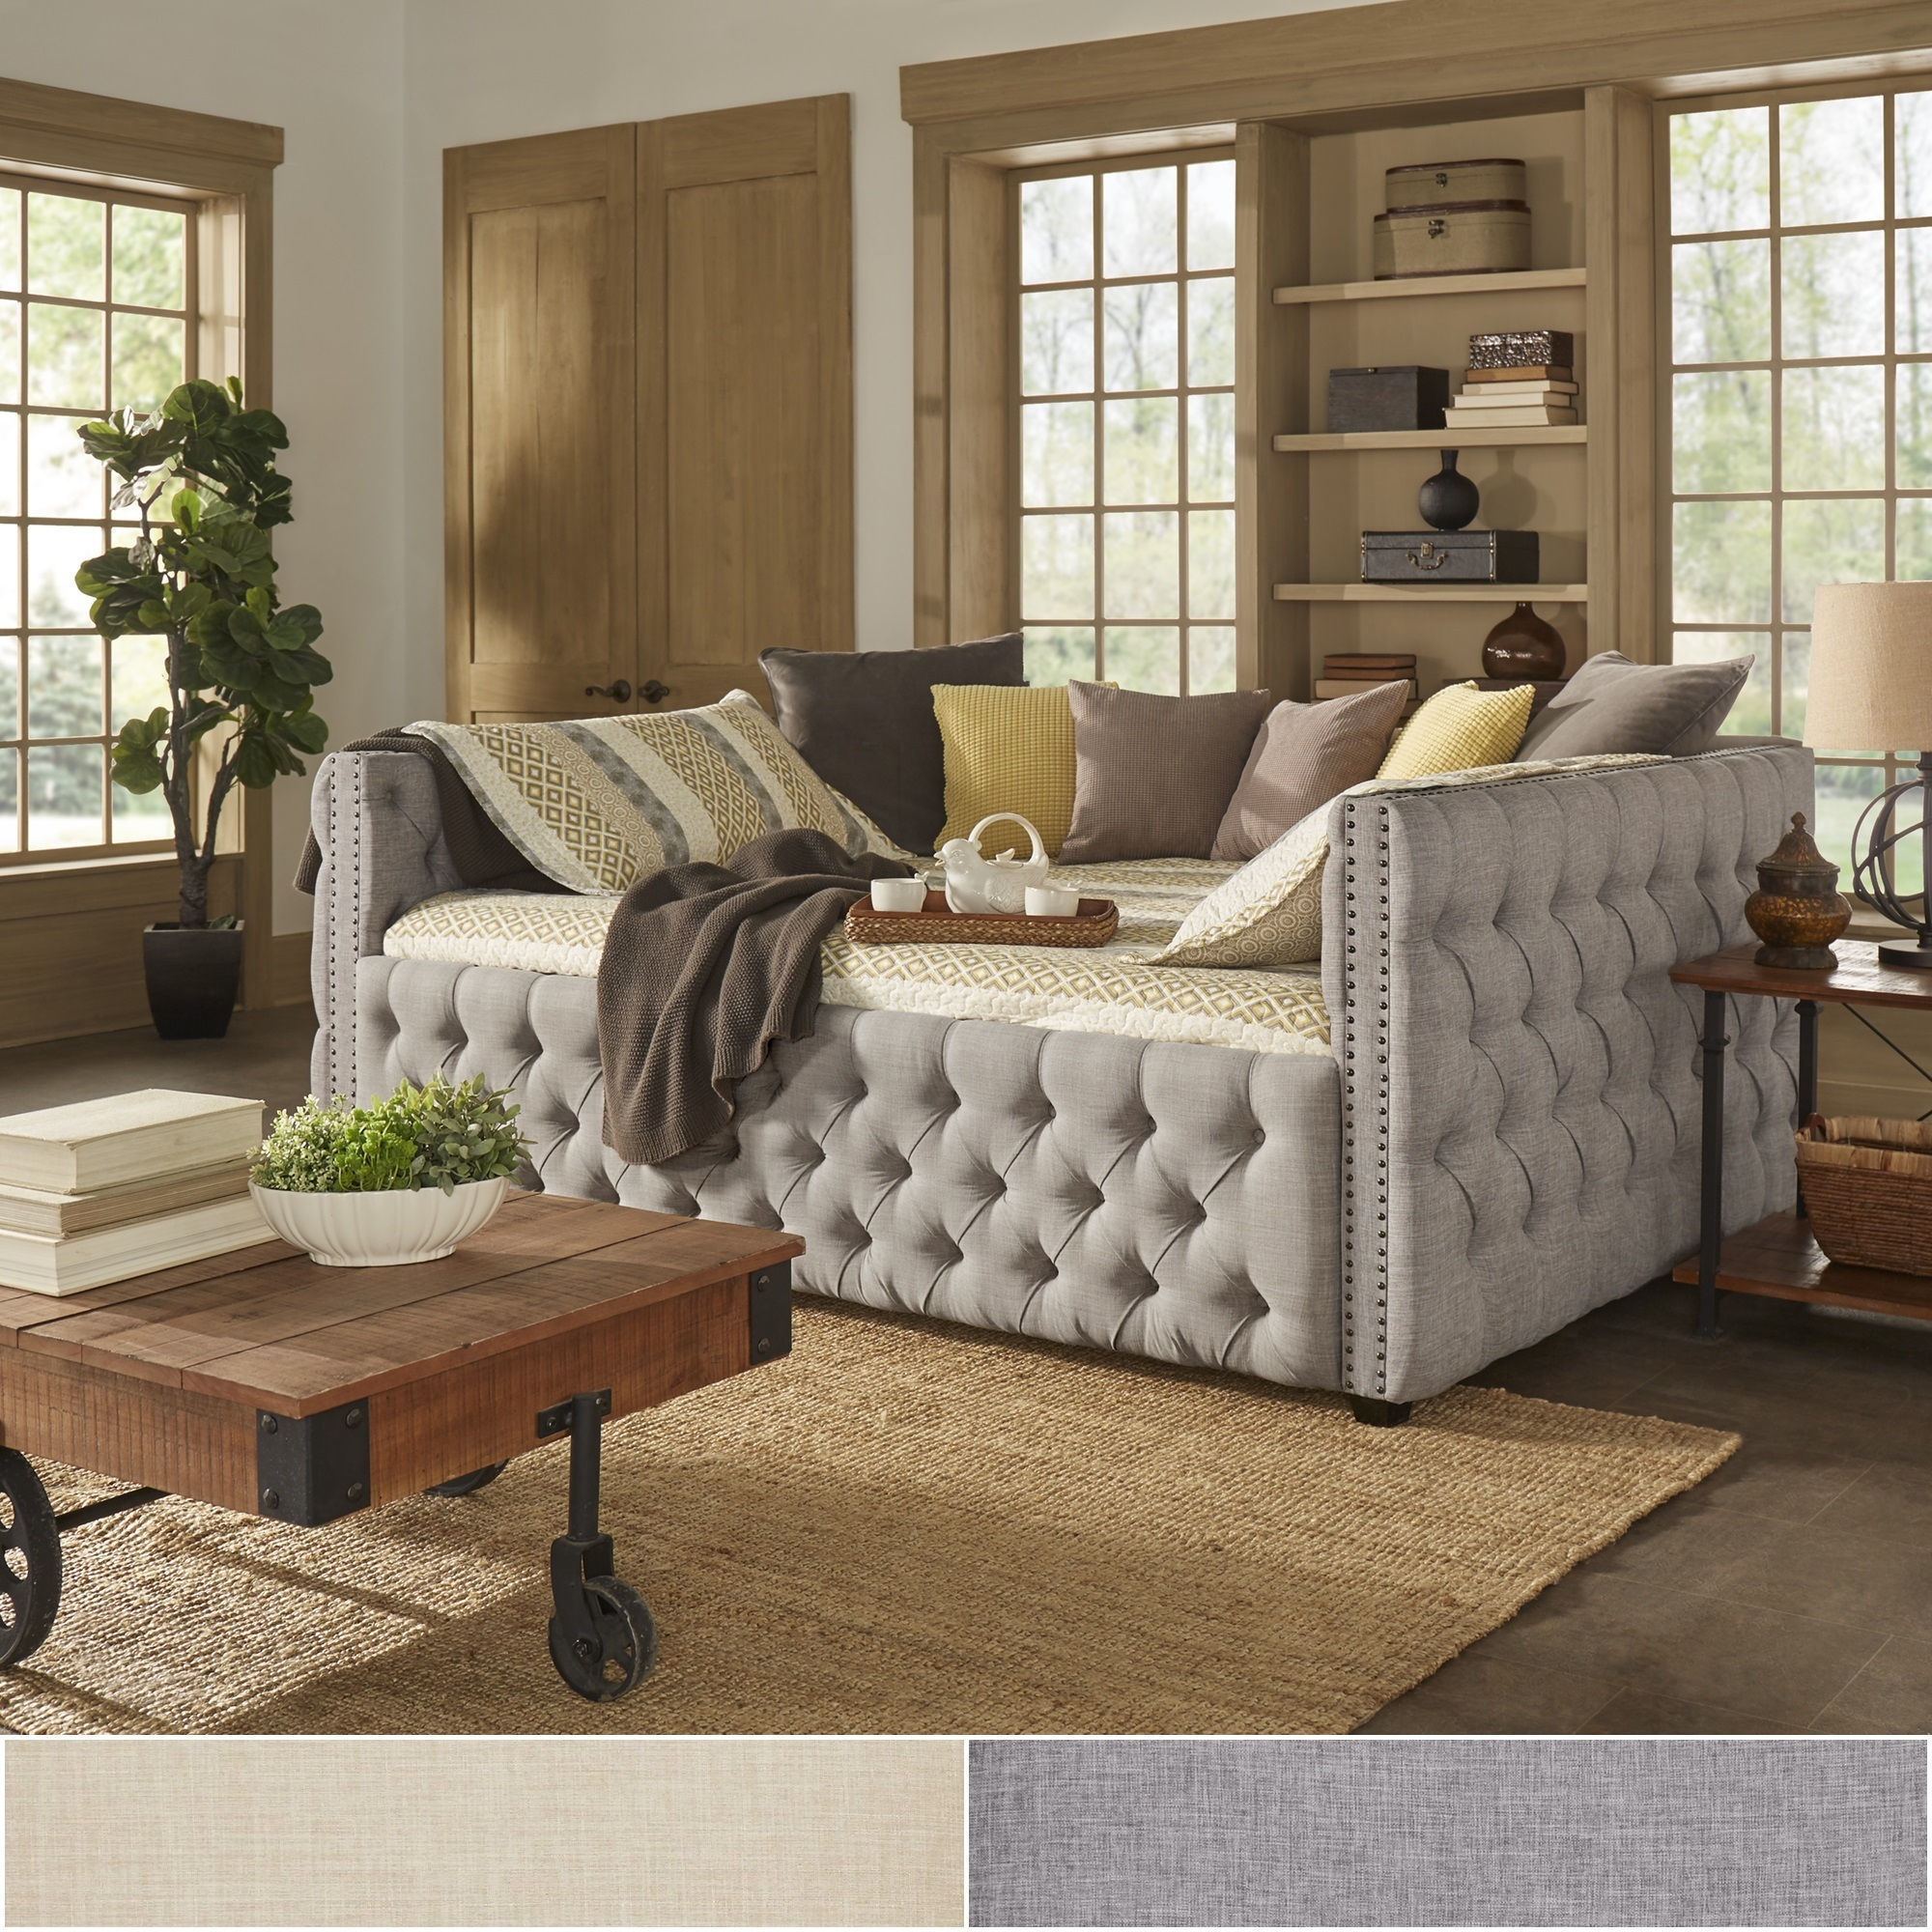 Storslåede Shop Knightsbridge Queen-size Tufted Nailhead Chesterfield Daybed QS92